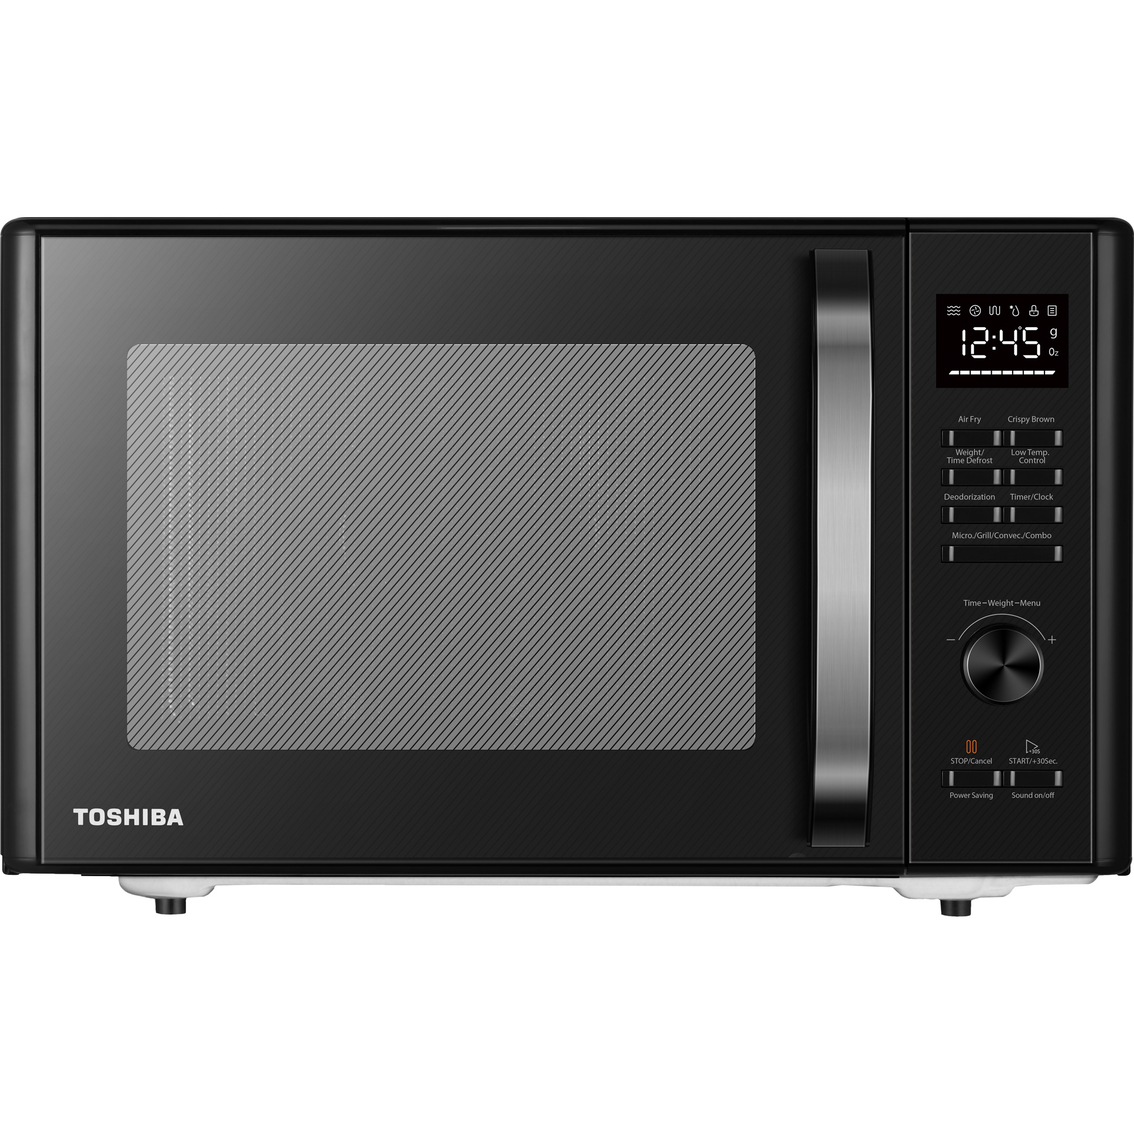 toshiba 1 cu ft 6 in 1 multifunction versa microwave oven